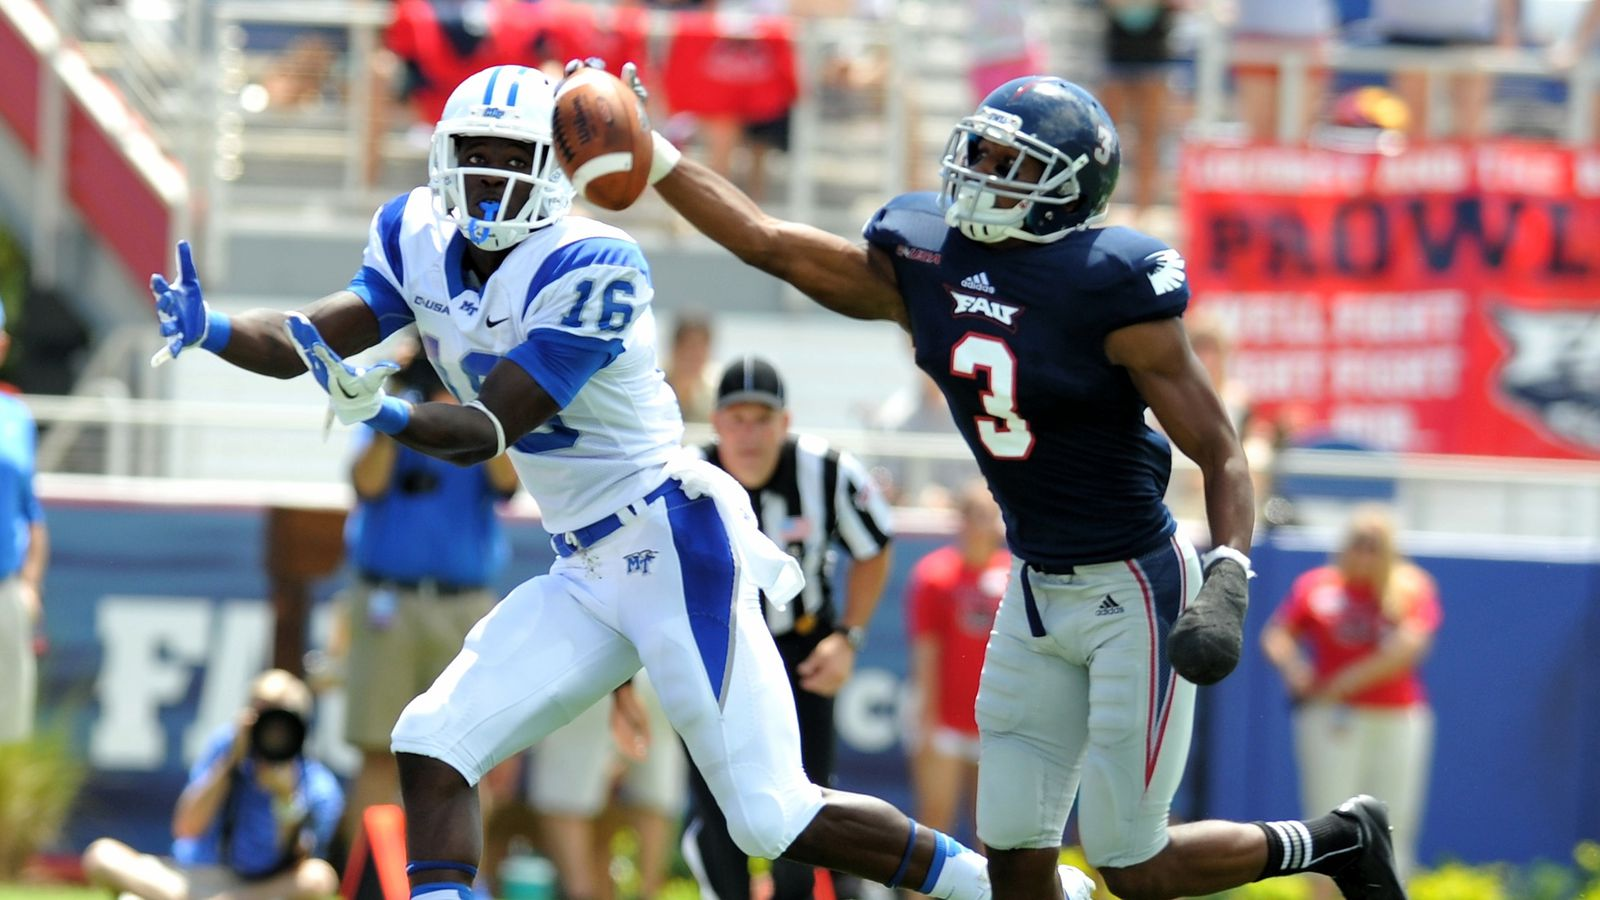 Nike jerseys for Cheap - NFL Draft results: CB Keith Reaser to San Francisco 49ers with ...